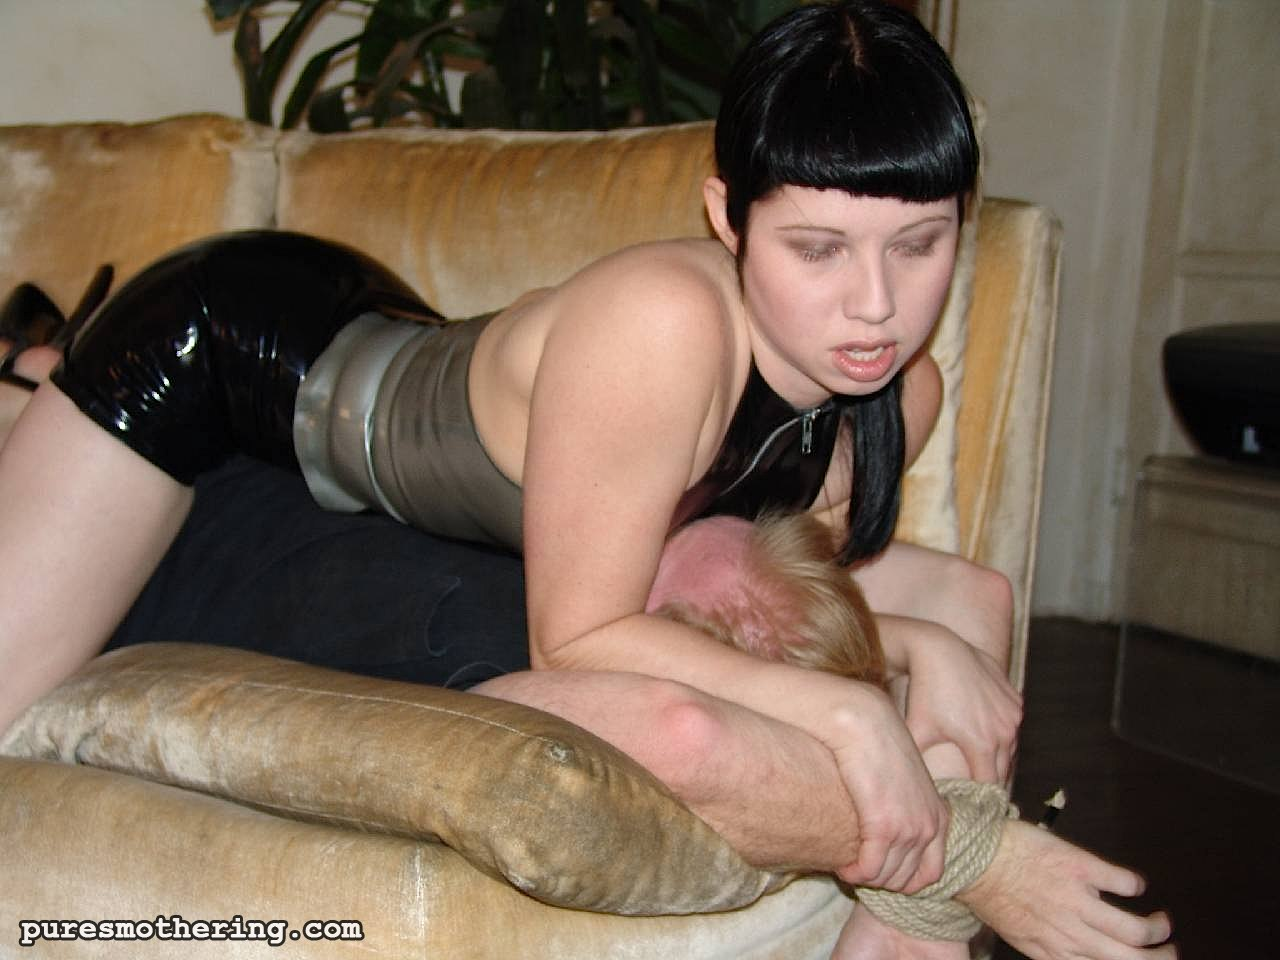 girl fucked in ass for st time